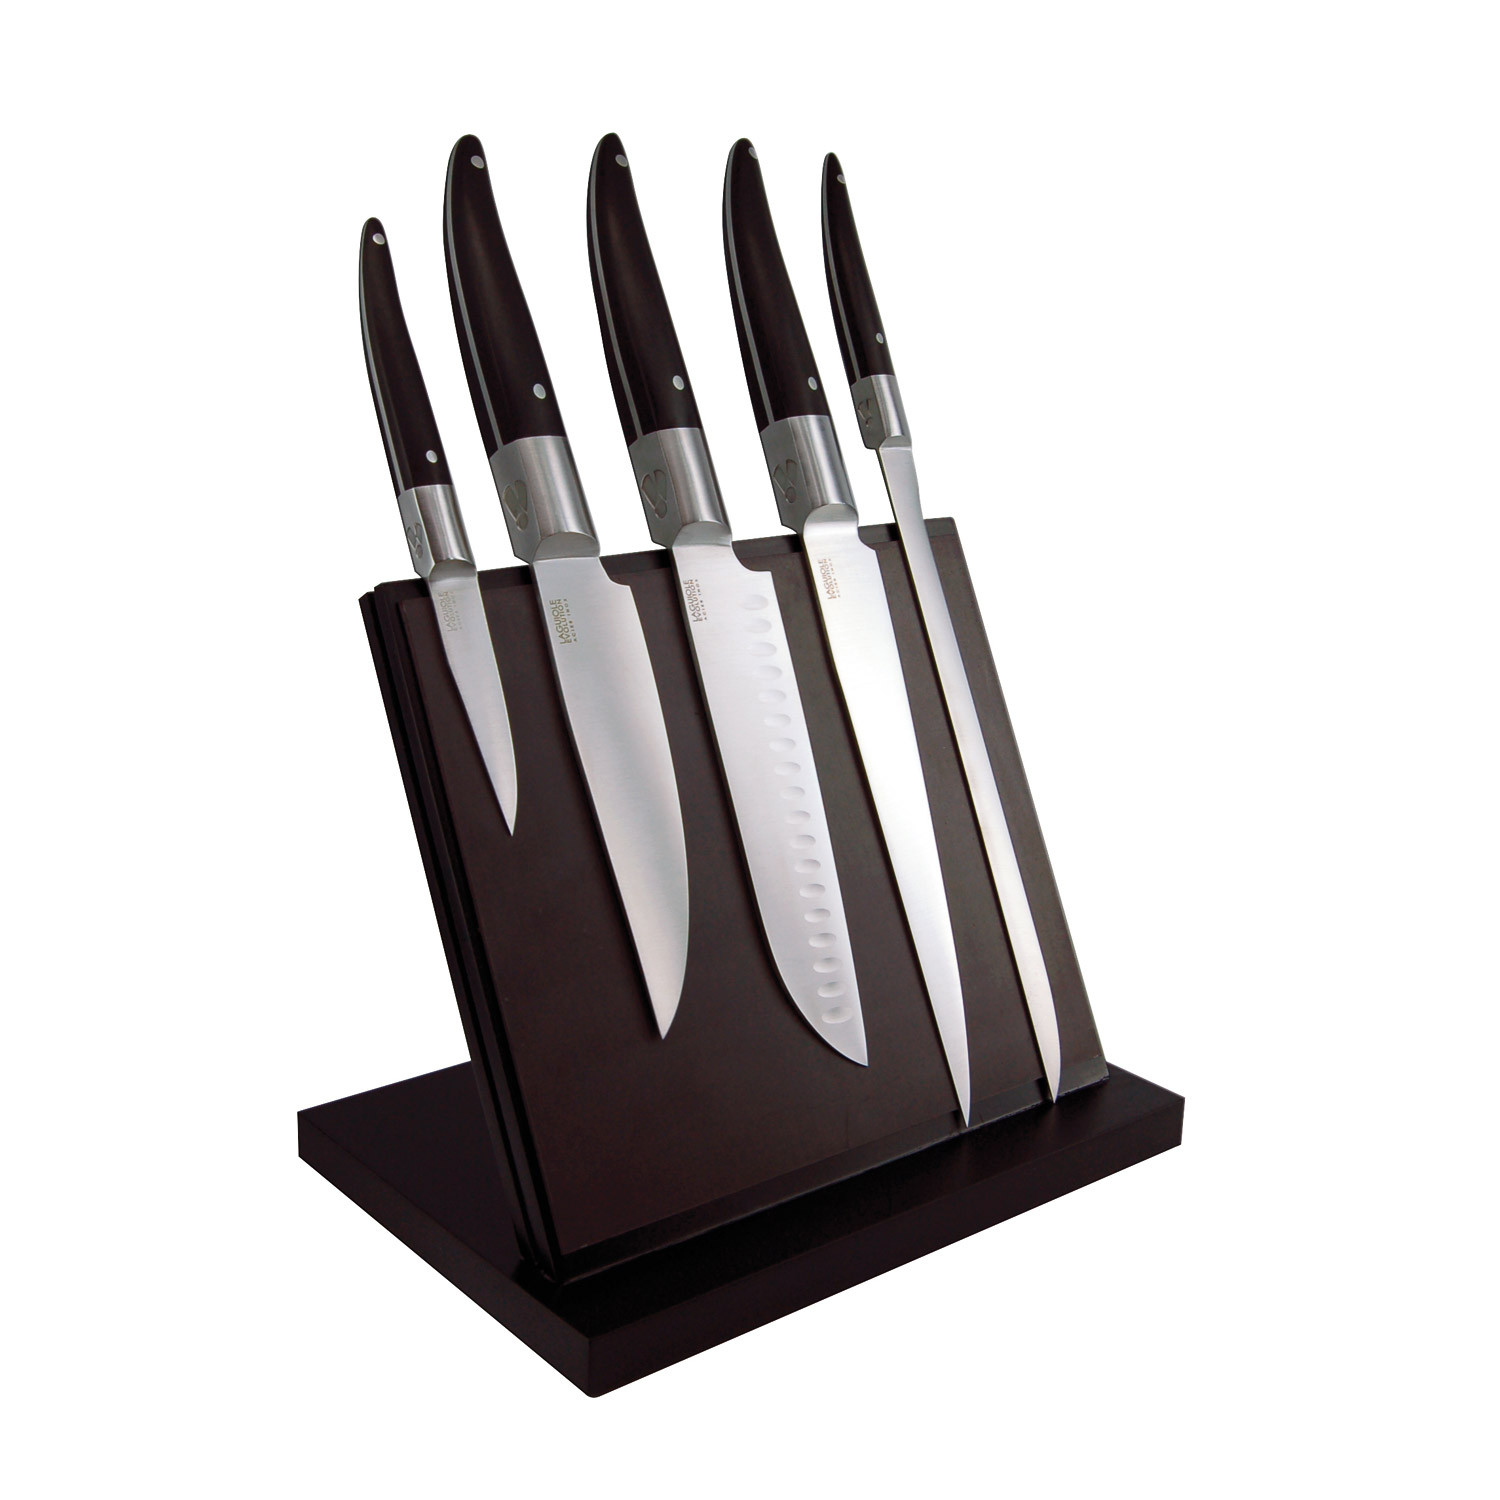 laguiole expression kitchen knives set of 5 tb groupe touch of modern. Black Bedroom Furniture Sets. Home Design Ideas